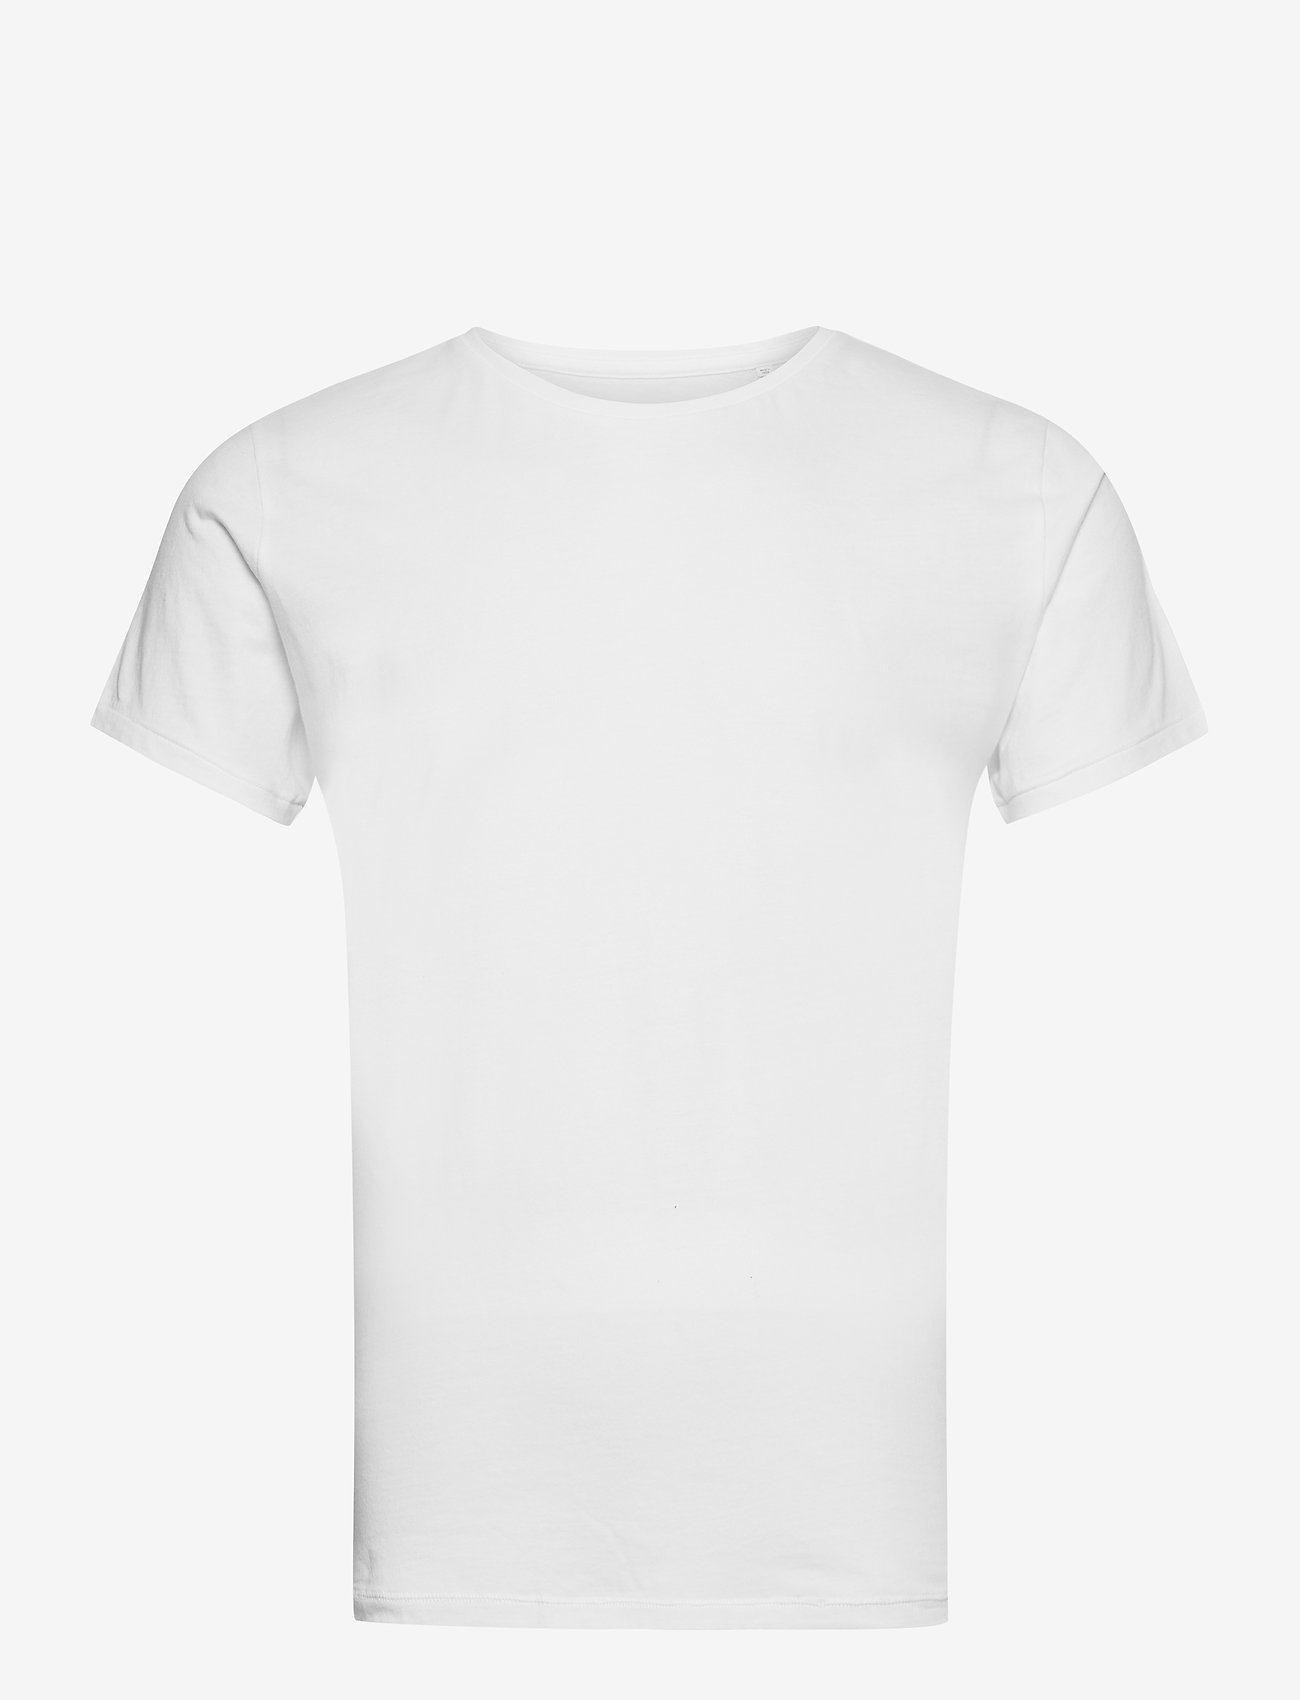 Knowledge Cotton Apparel - ALDER 5 pack basic tee - flat packe - basic t-shirts - bright white - 4